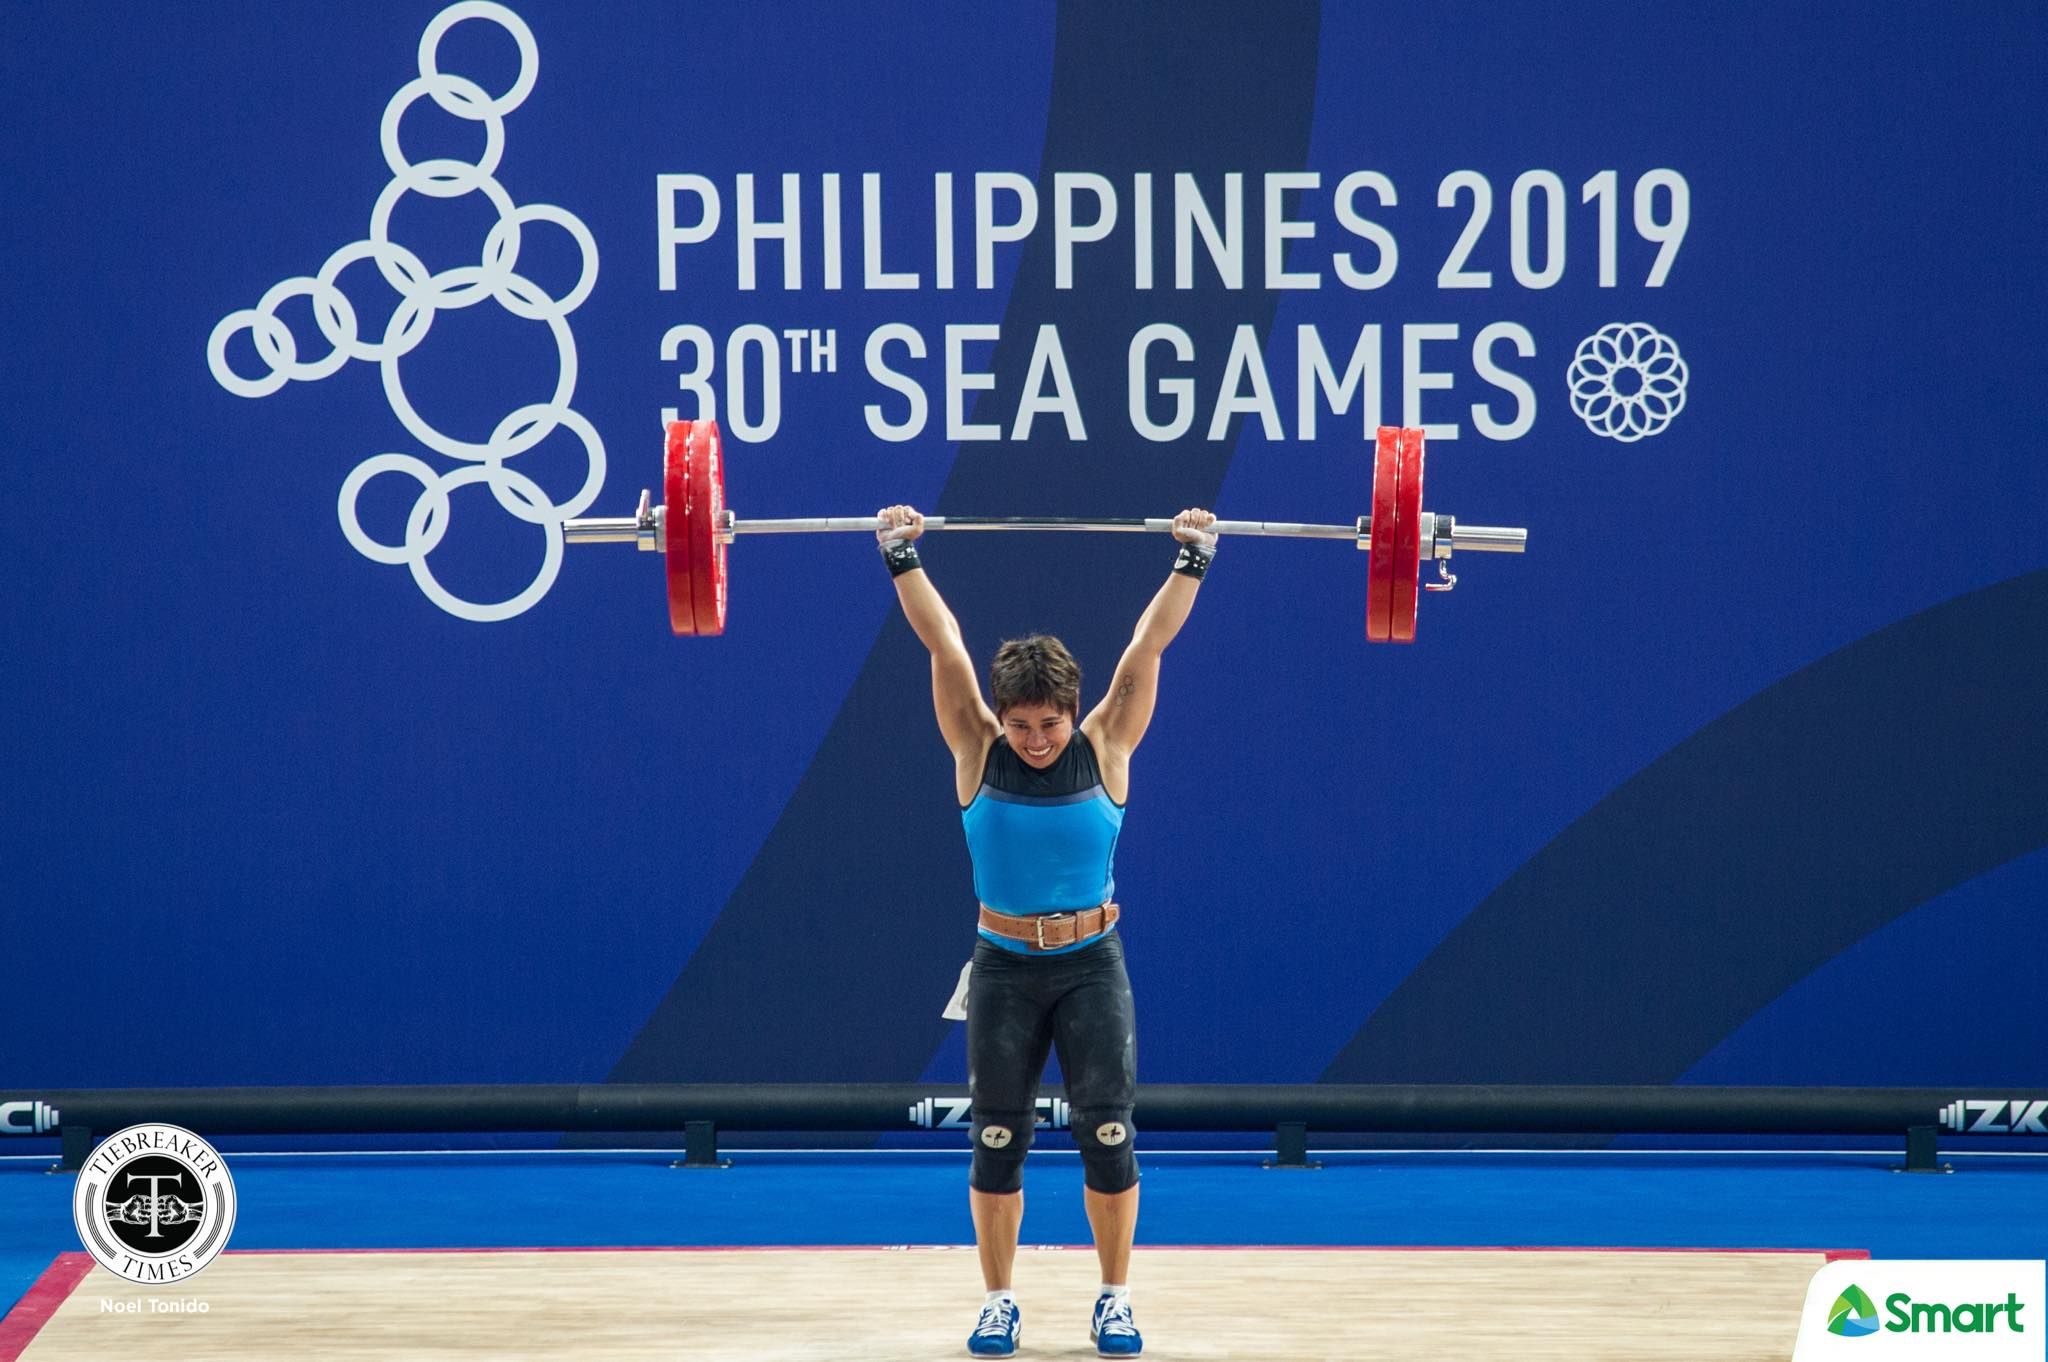 Tiebreaker Times Hidilyn Diaz's Olympic dream suffers blow due to coronavirus pandemic 2020 Tokyo Olympics News Weightlifting  Samahang Weightlifting ng Pilipinas Monico Puentevella Hidilyn Diaz Coronavirus Pandemic 2020 Ibero-American Open